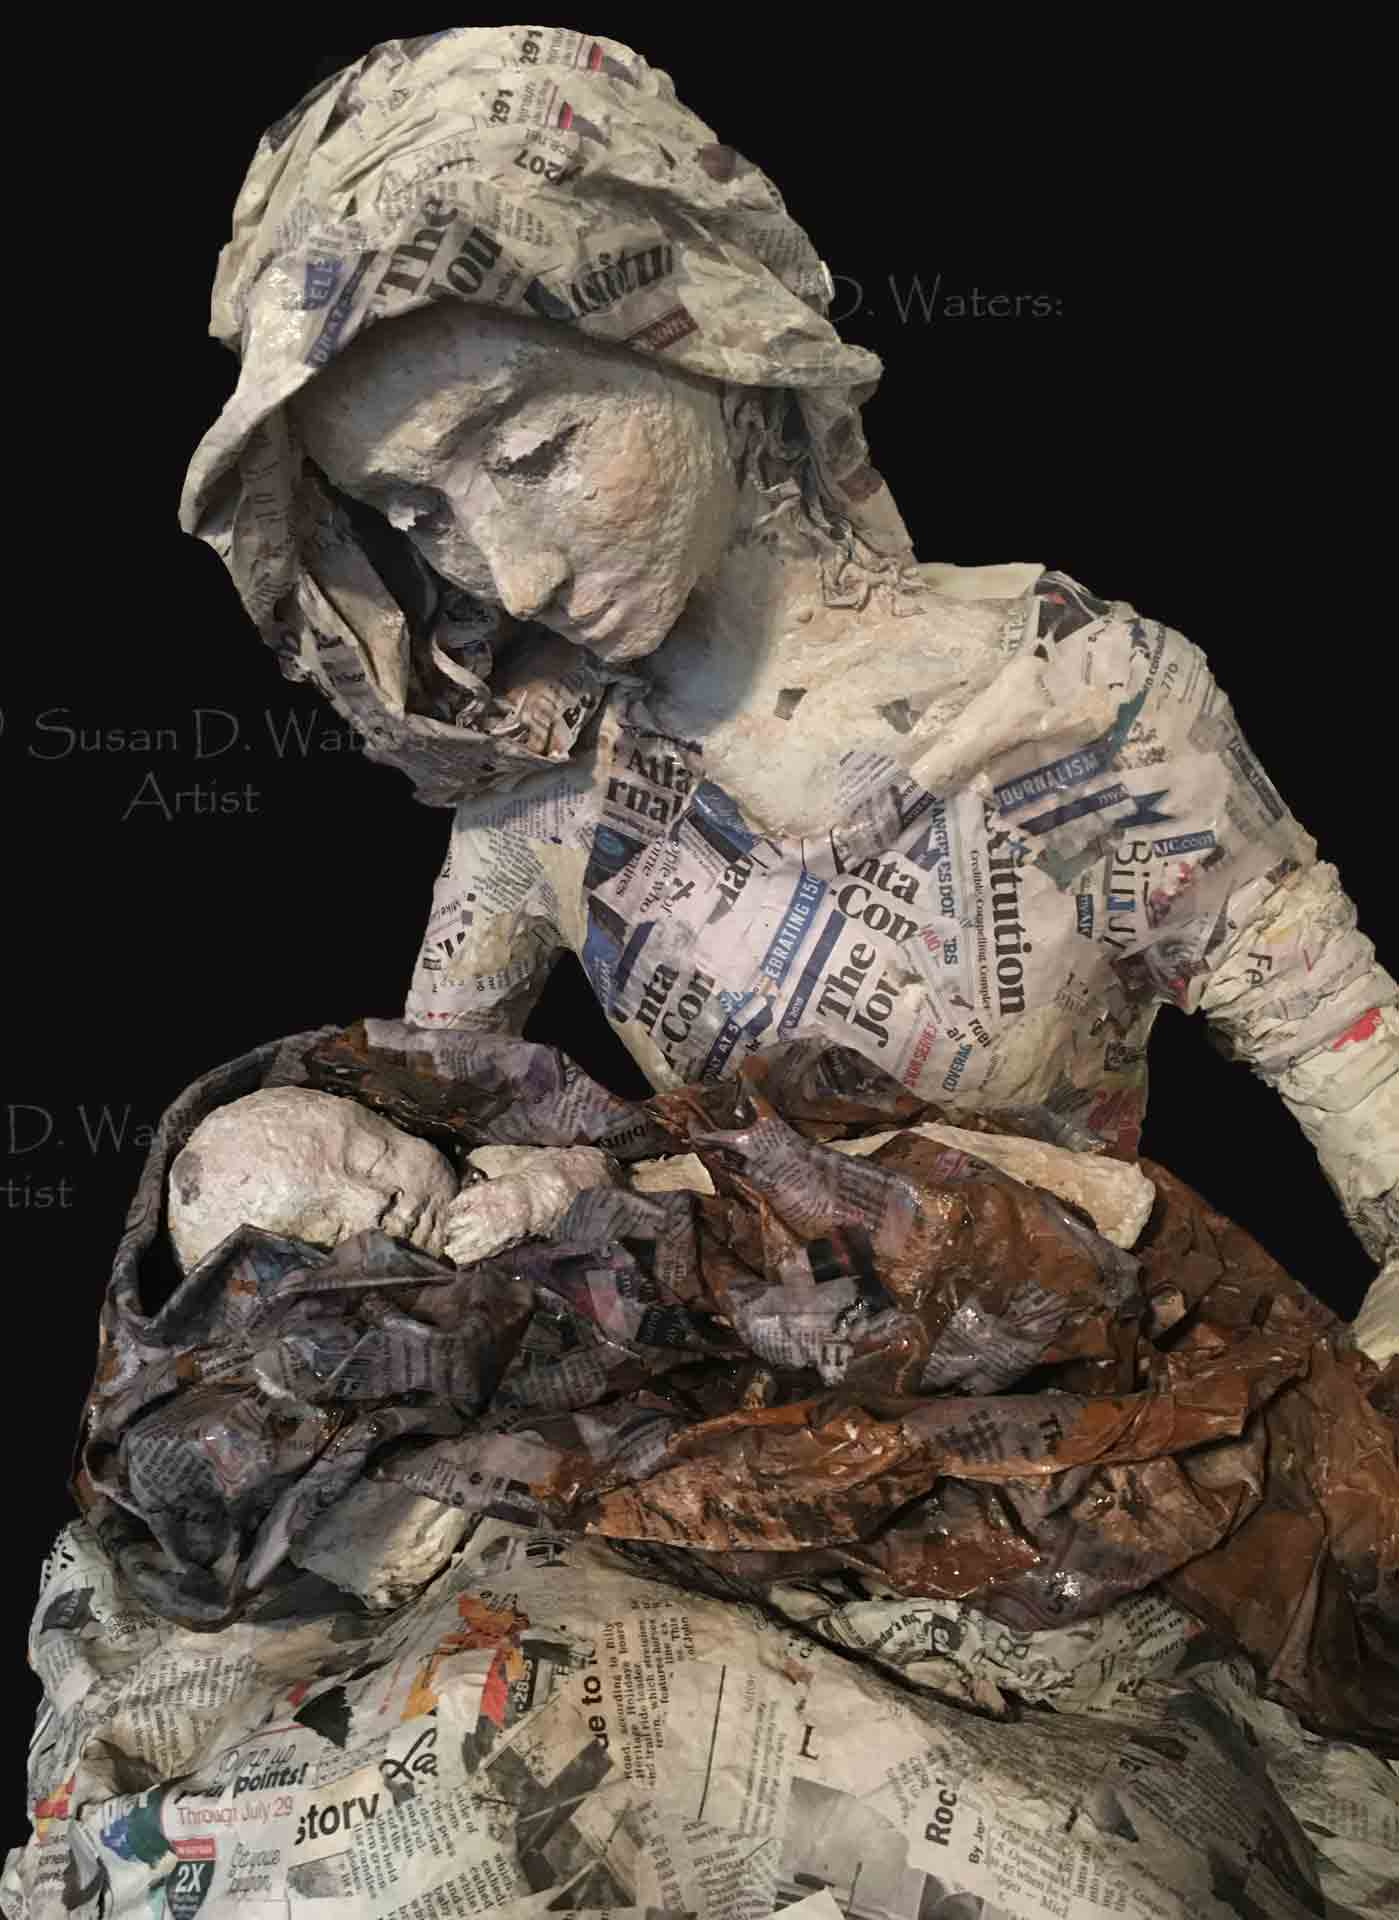 Unfinished-Mary-and-Baby-Jesus-Papier-Mache-Sculpture,-Susan-Duke-Waters